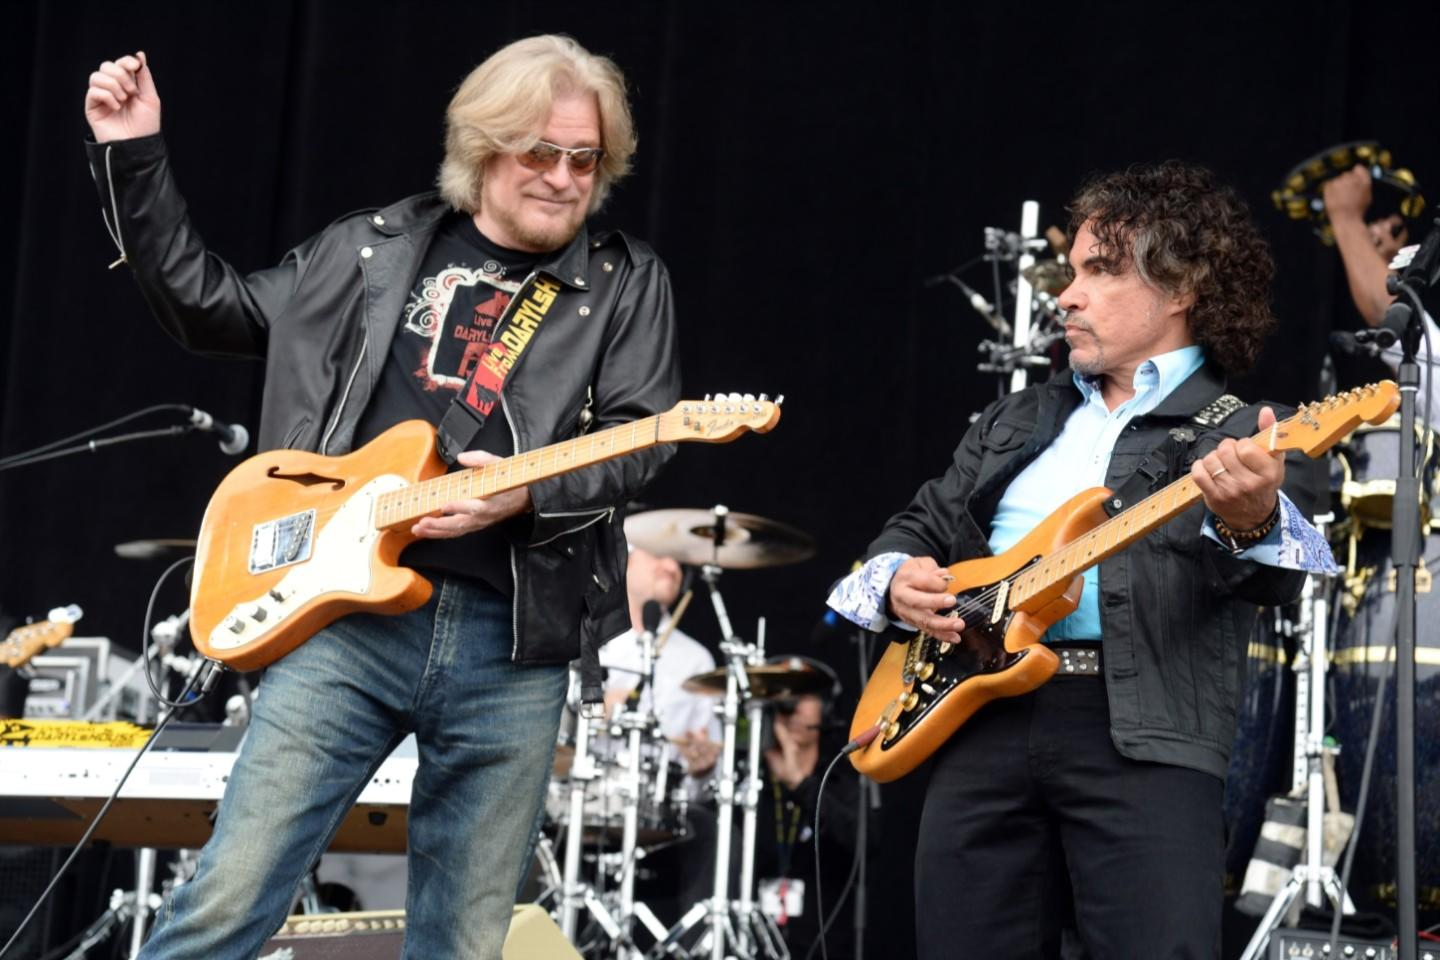 Hall And Oates Tour 2020.Hall And Oates Tickets Hall And Oates Tour Dates 2020 And